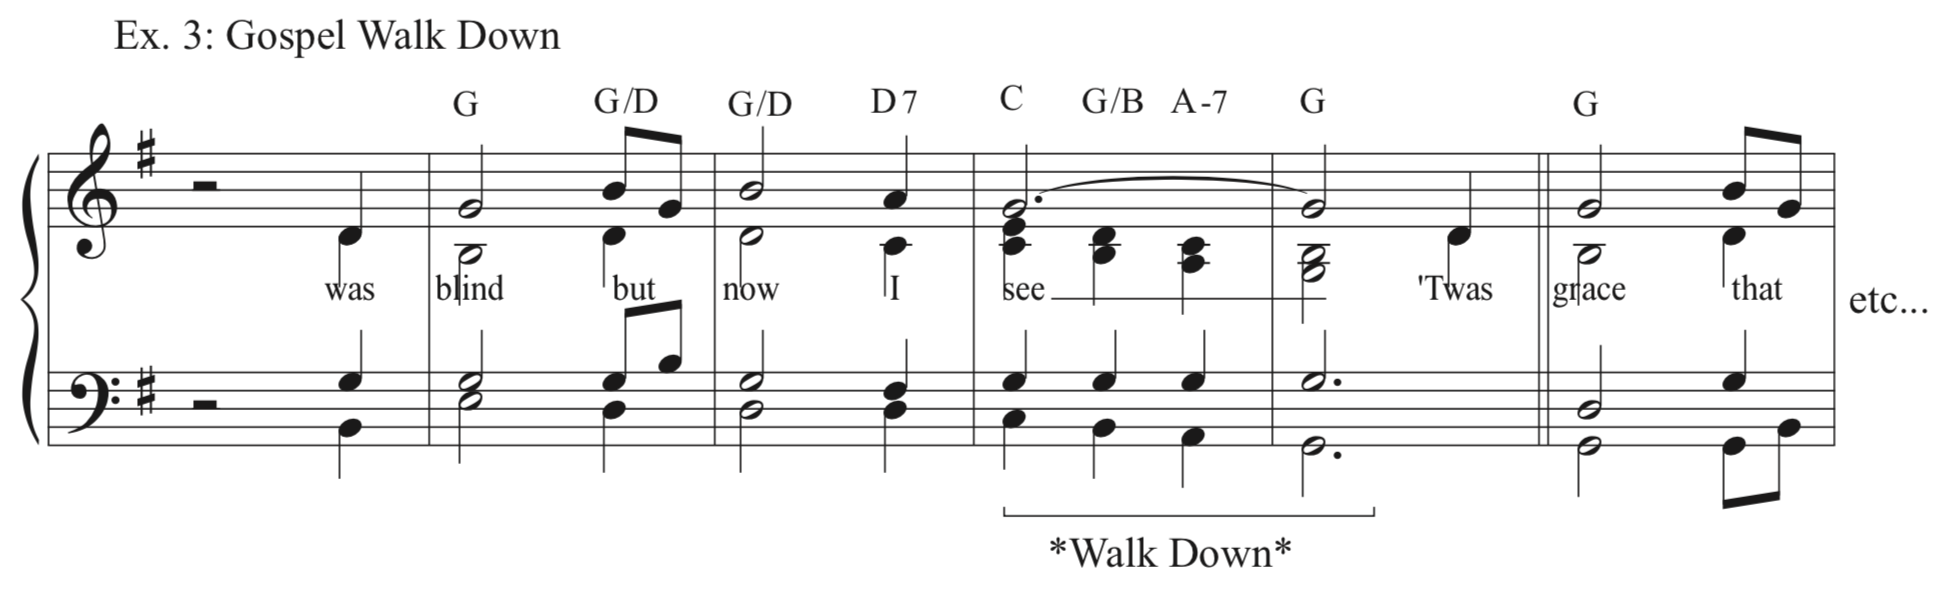 Ex. 3 - 'Gospel' Walk Down - A traditional cadence with a familiar sound that we've all heard many times. A great stand-by, especially for hymns with a gospel-y vibe.